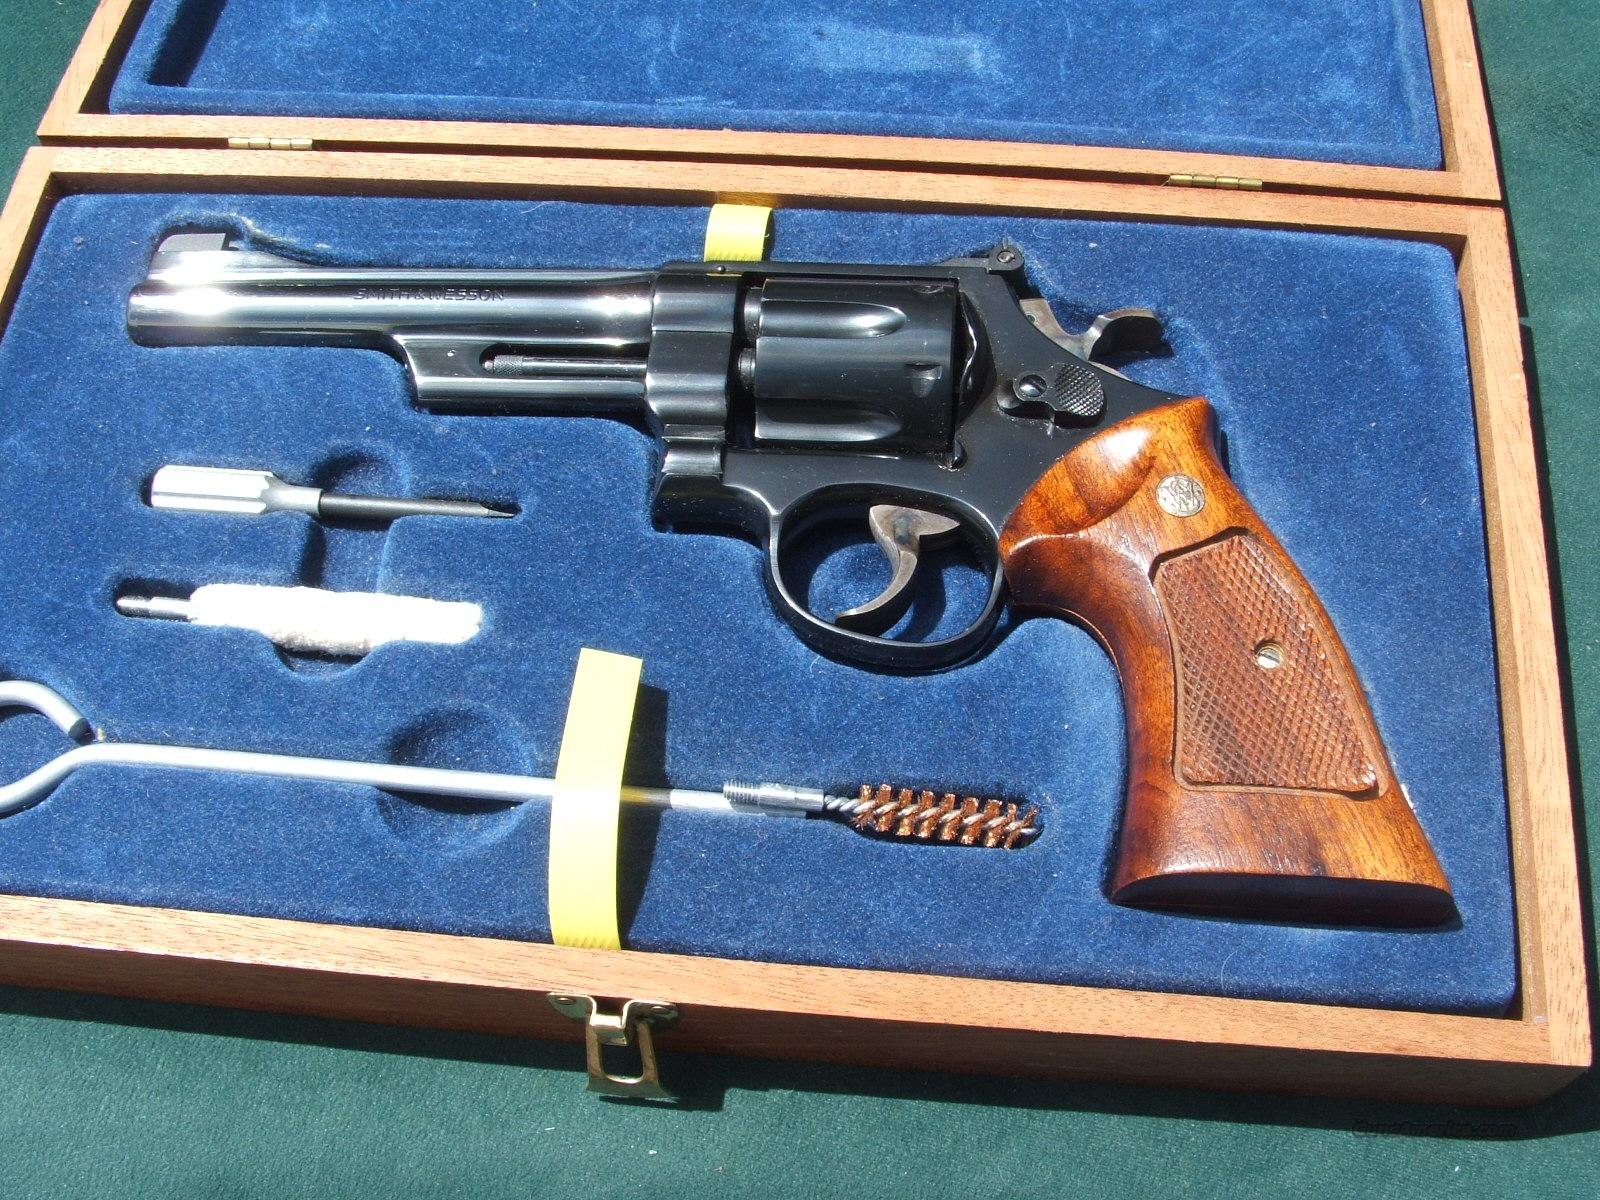 S&Wmodel27-2woodcase  Guns > Pistols > Smith & Wesson Revolvers > Full Frame Revolver